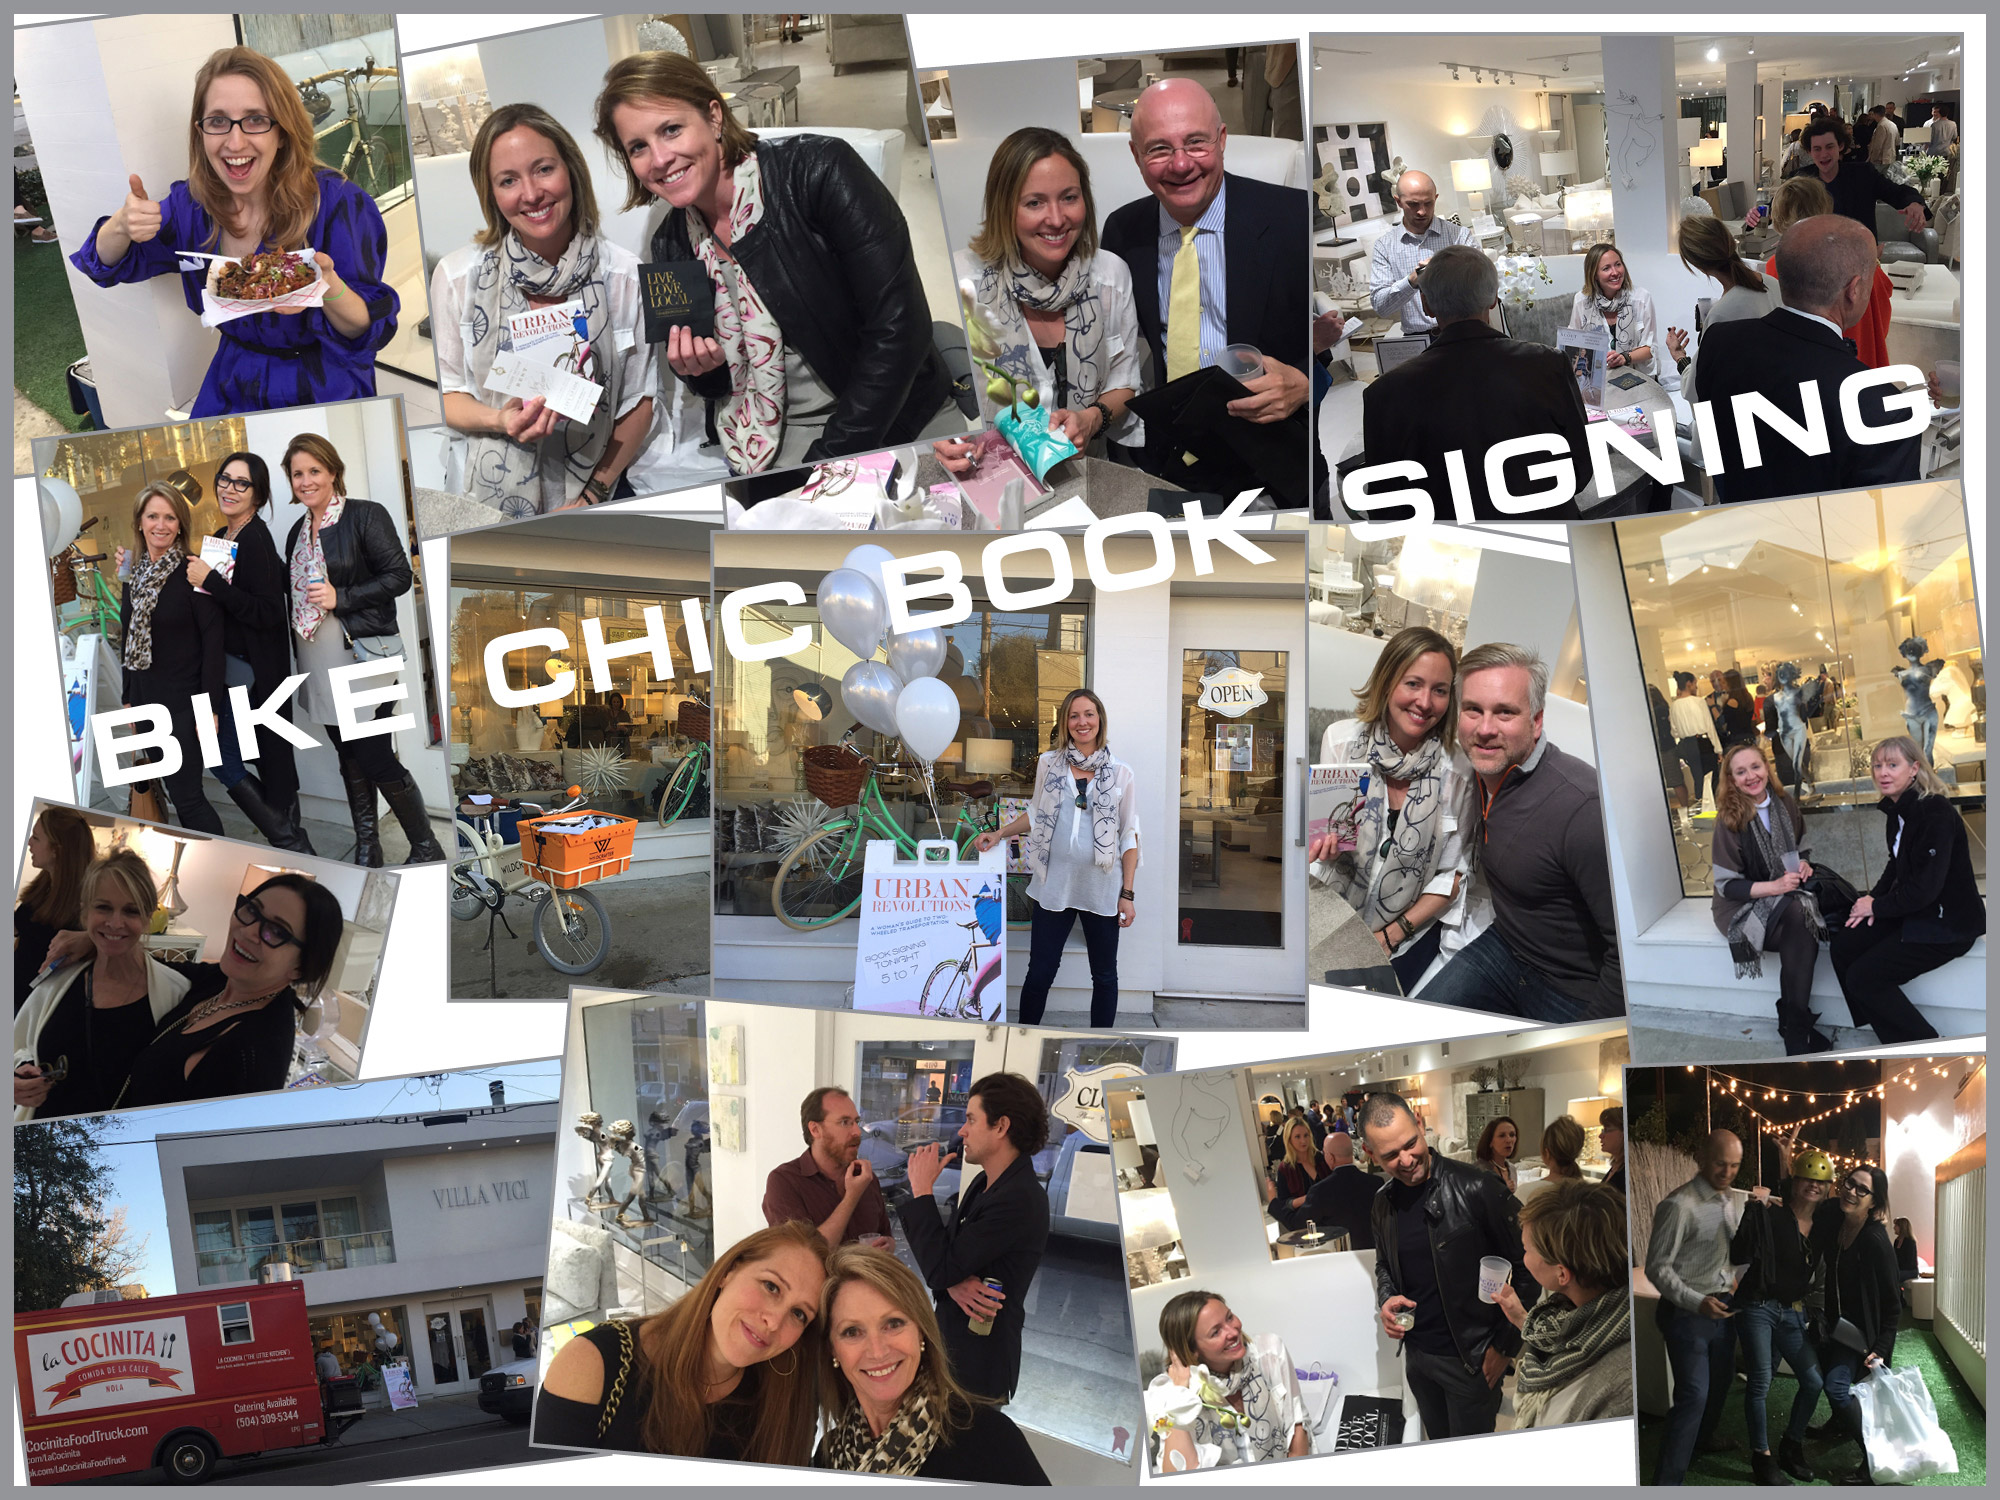 Bike Chic Book Signing Party Pics